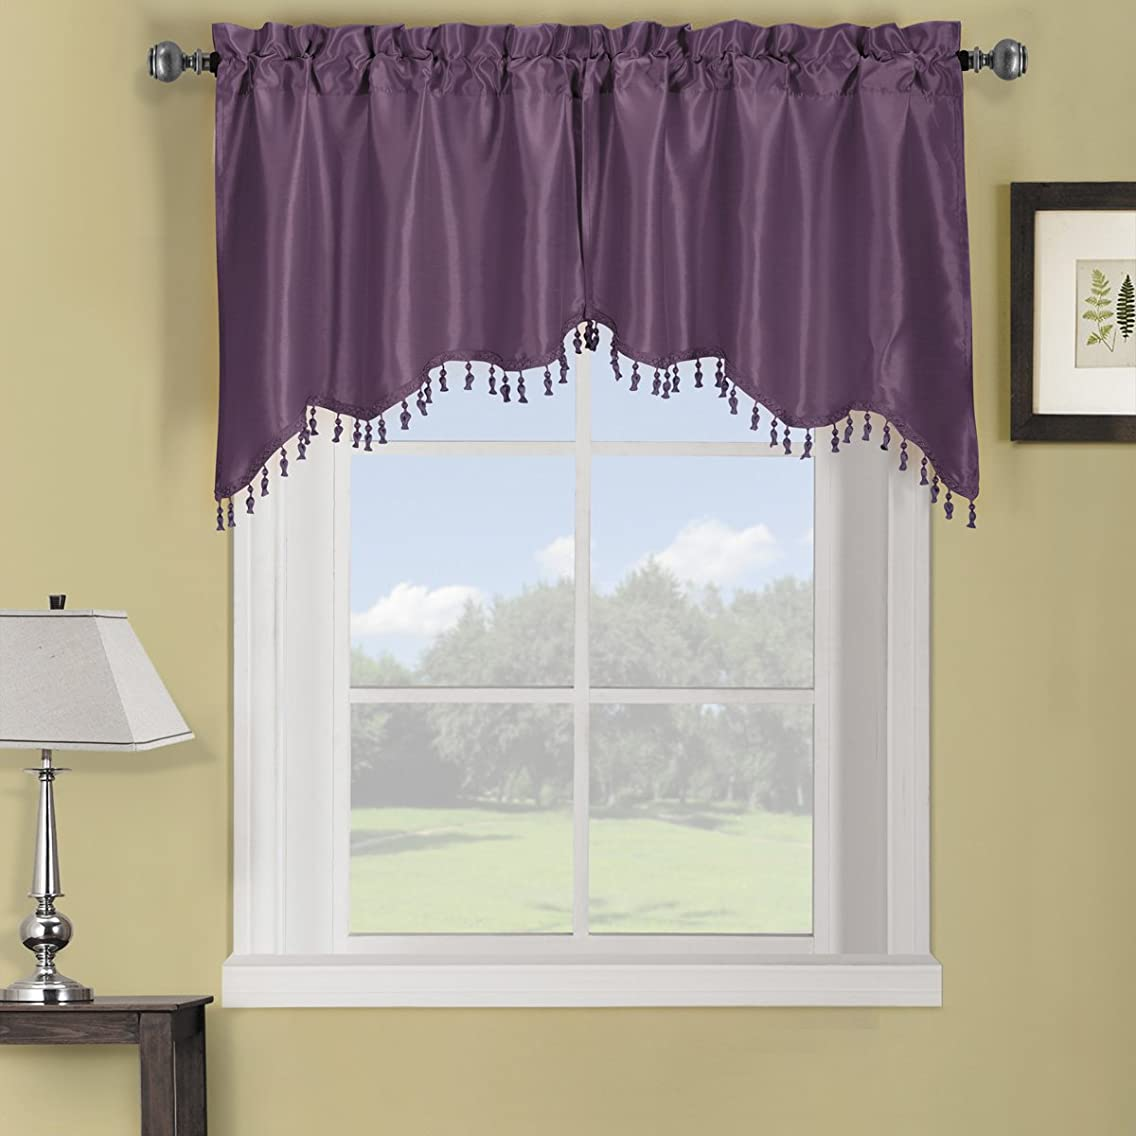 Sheetsnthings 100% Polyester Purple Soho Swag Decorative Trim Window Valance 70